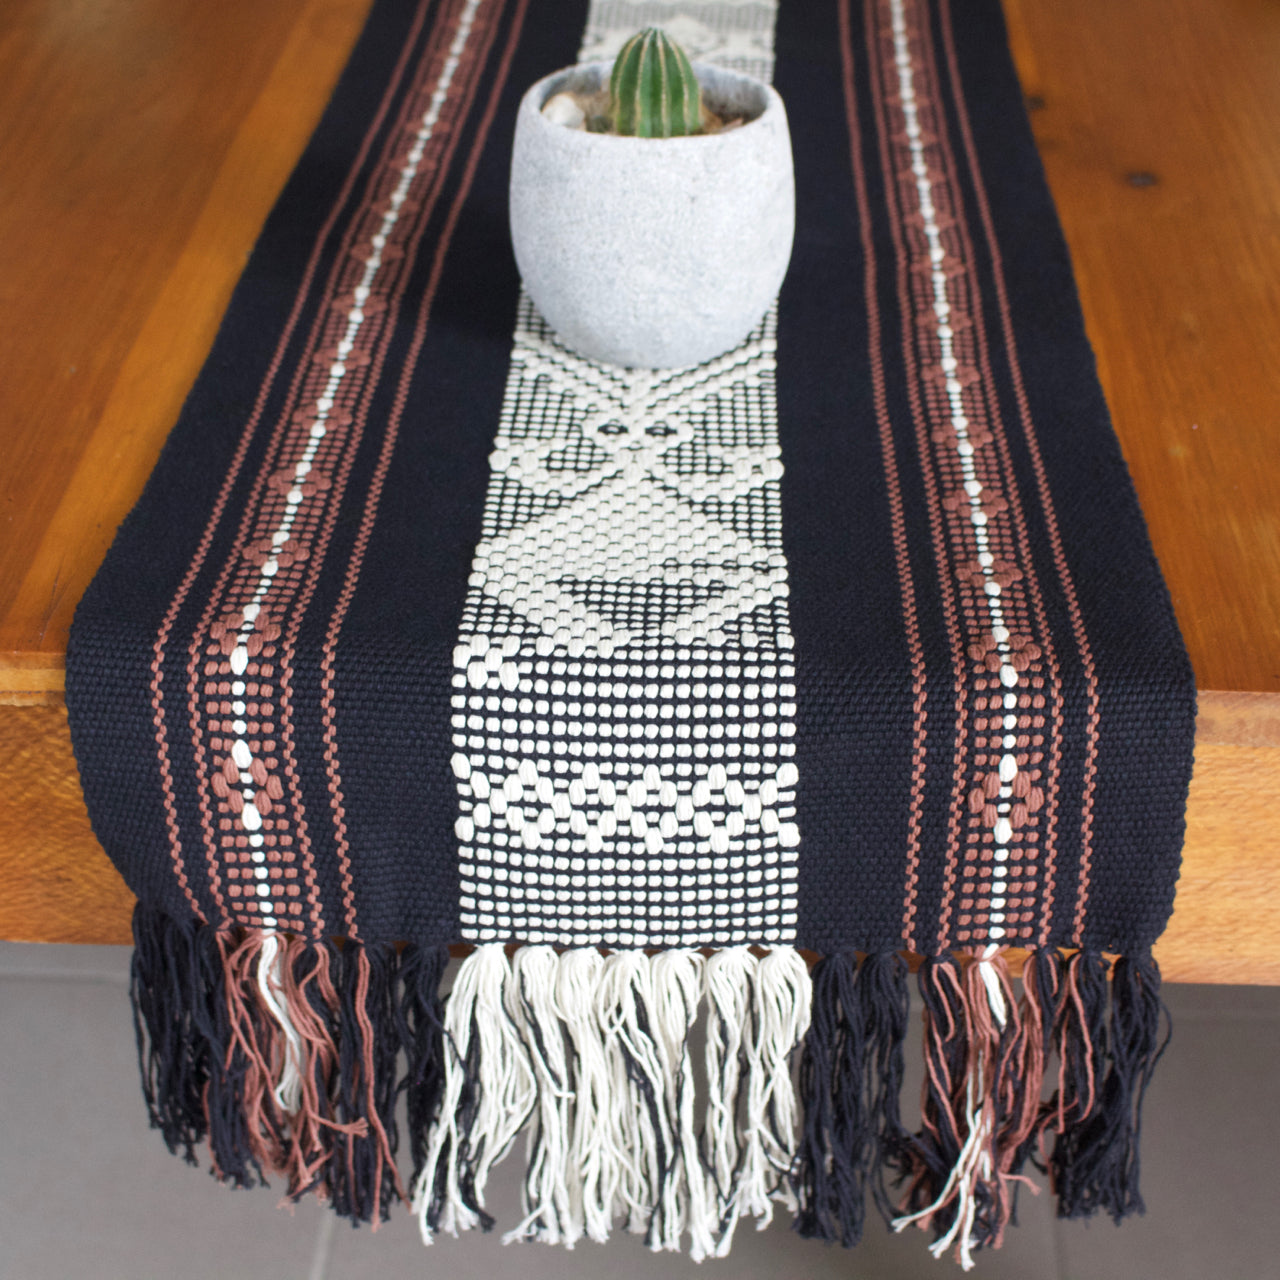 Jalieza Table Runner - Large 03  Table runners Black - Cielo Collective handmade Mexico Guatemala